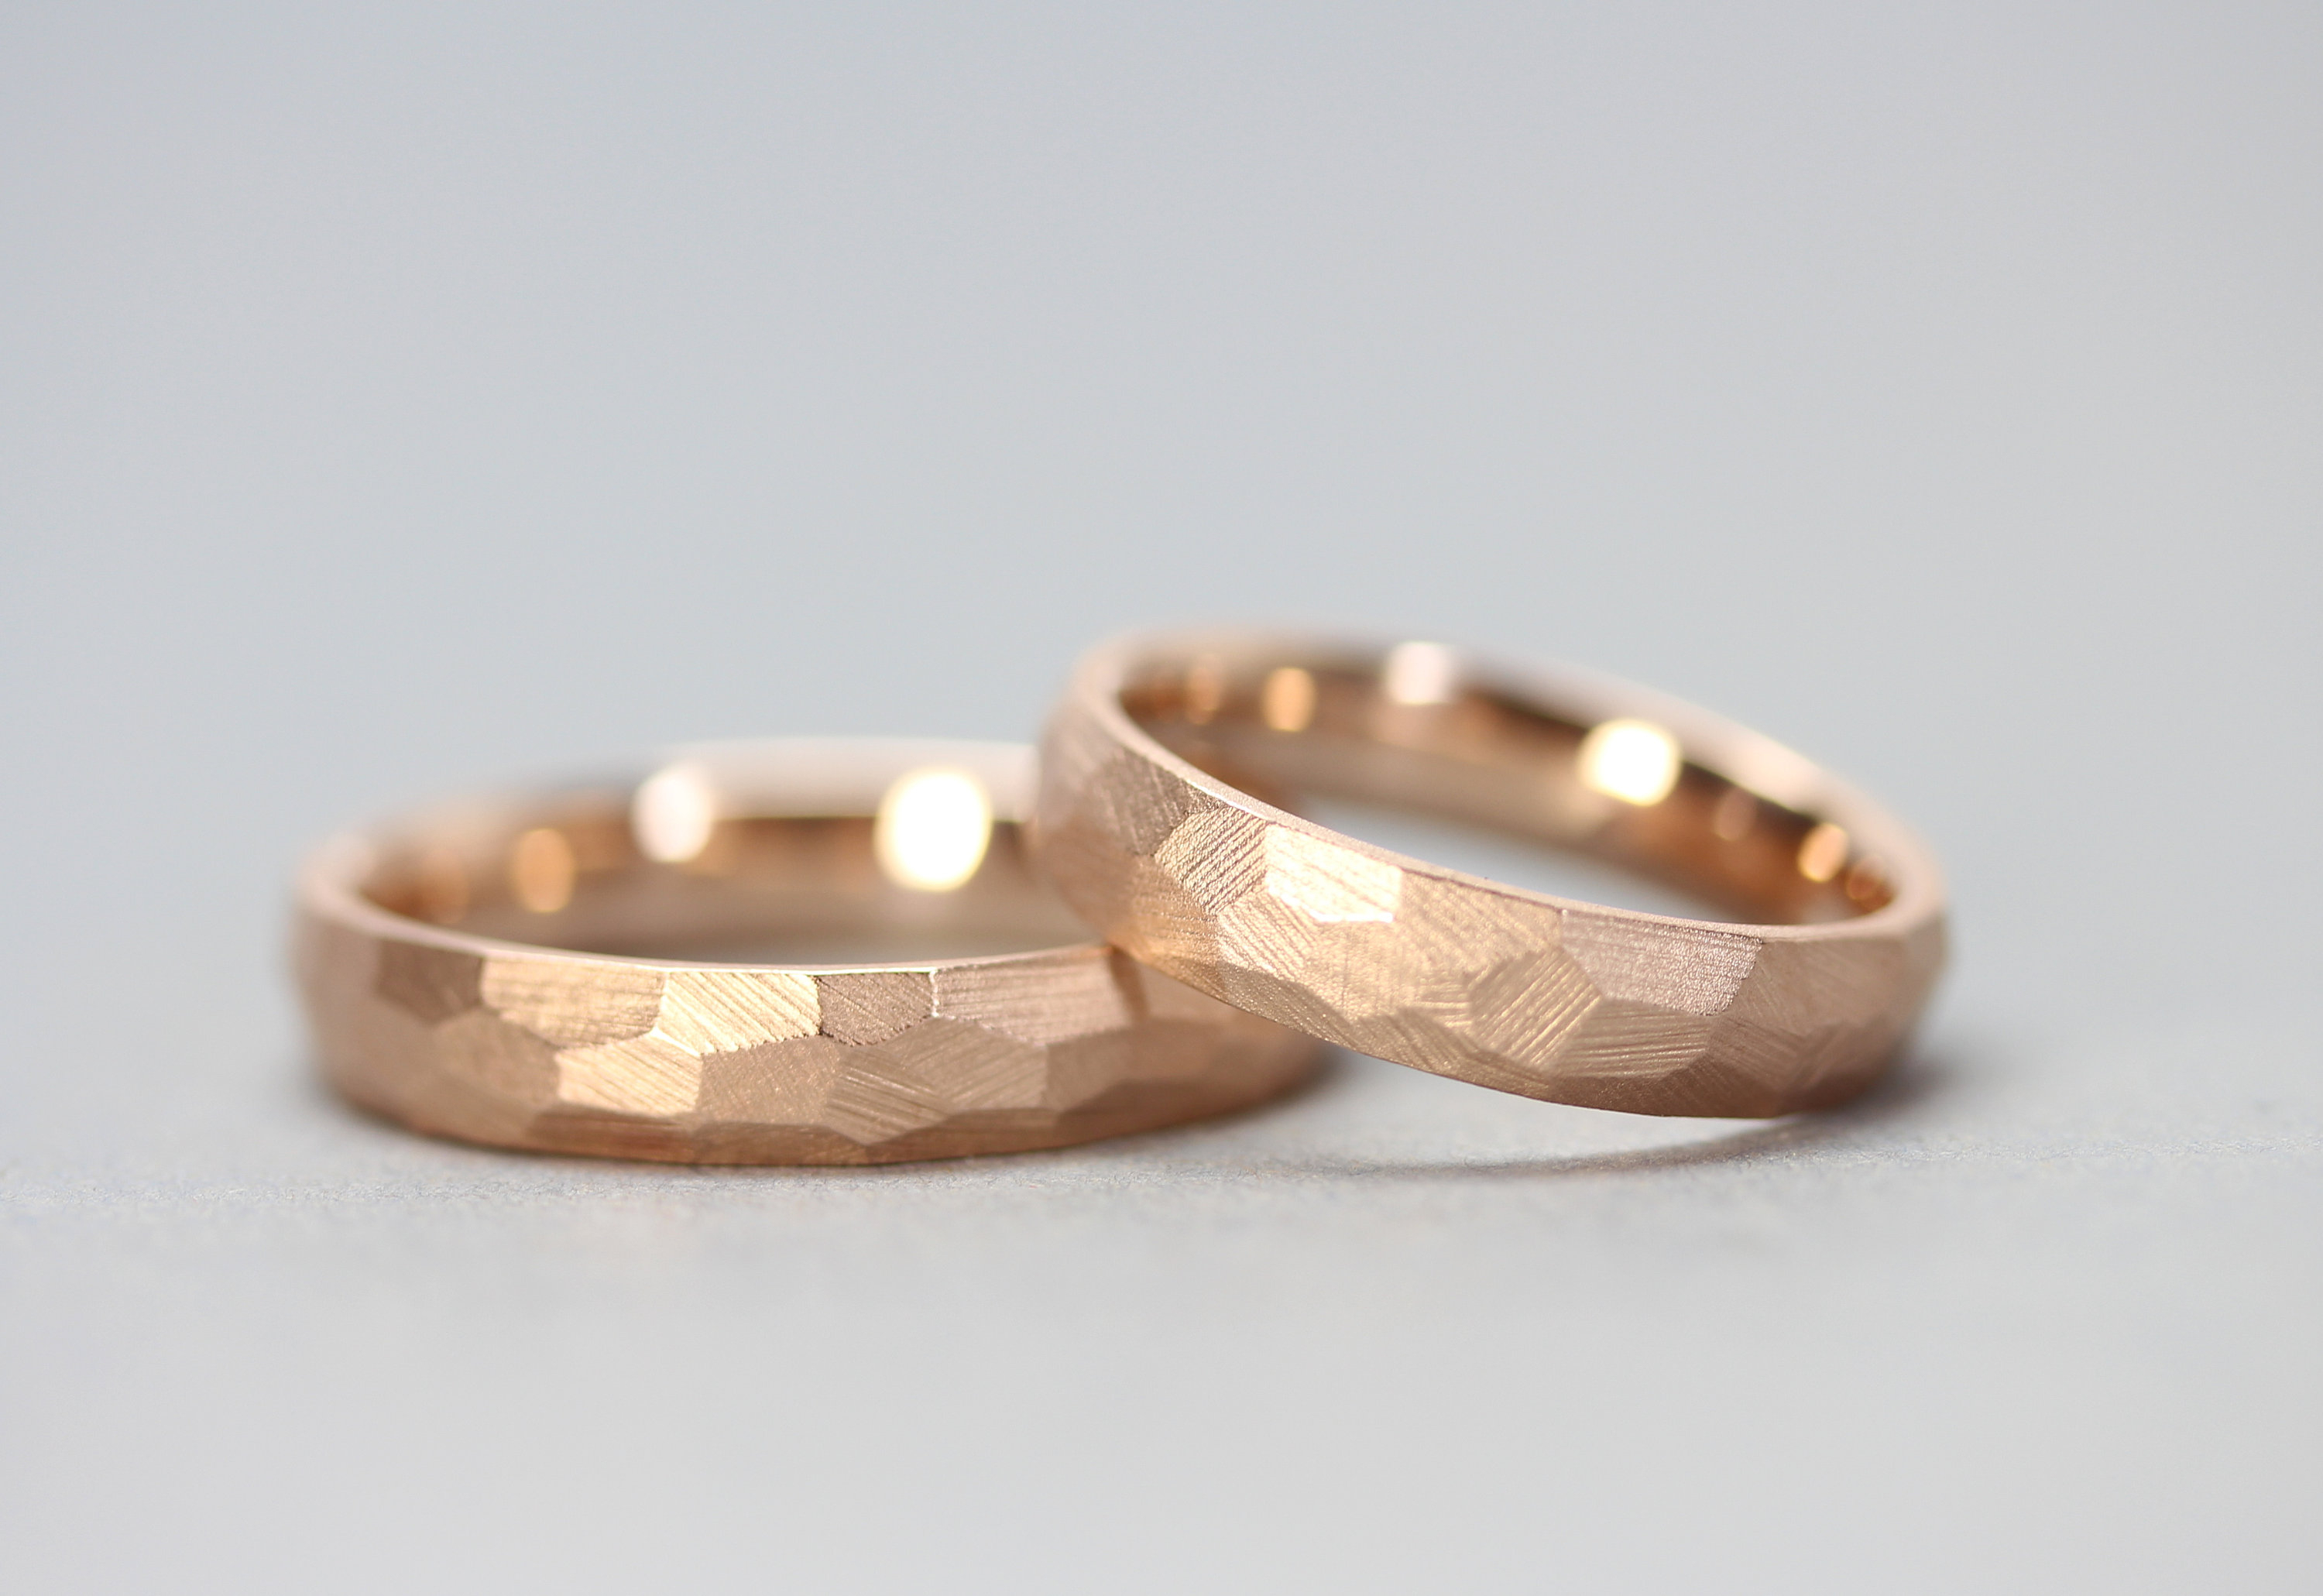 Multifaceted Wedding Rings In 585/red Gold Pertaining To Current Multifaceted Rings (Gallery 12 of 25)